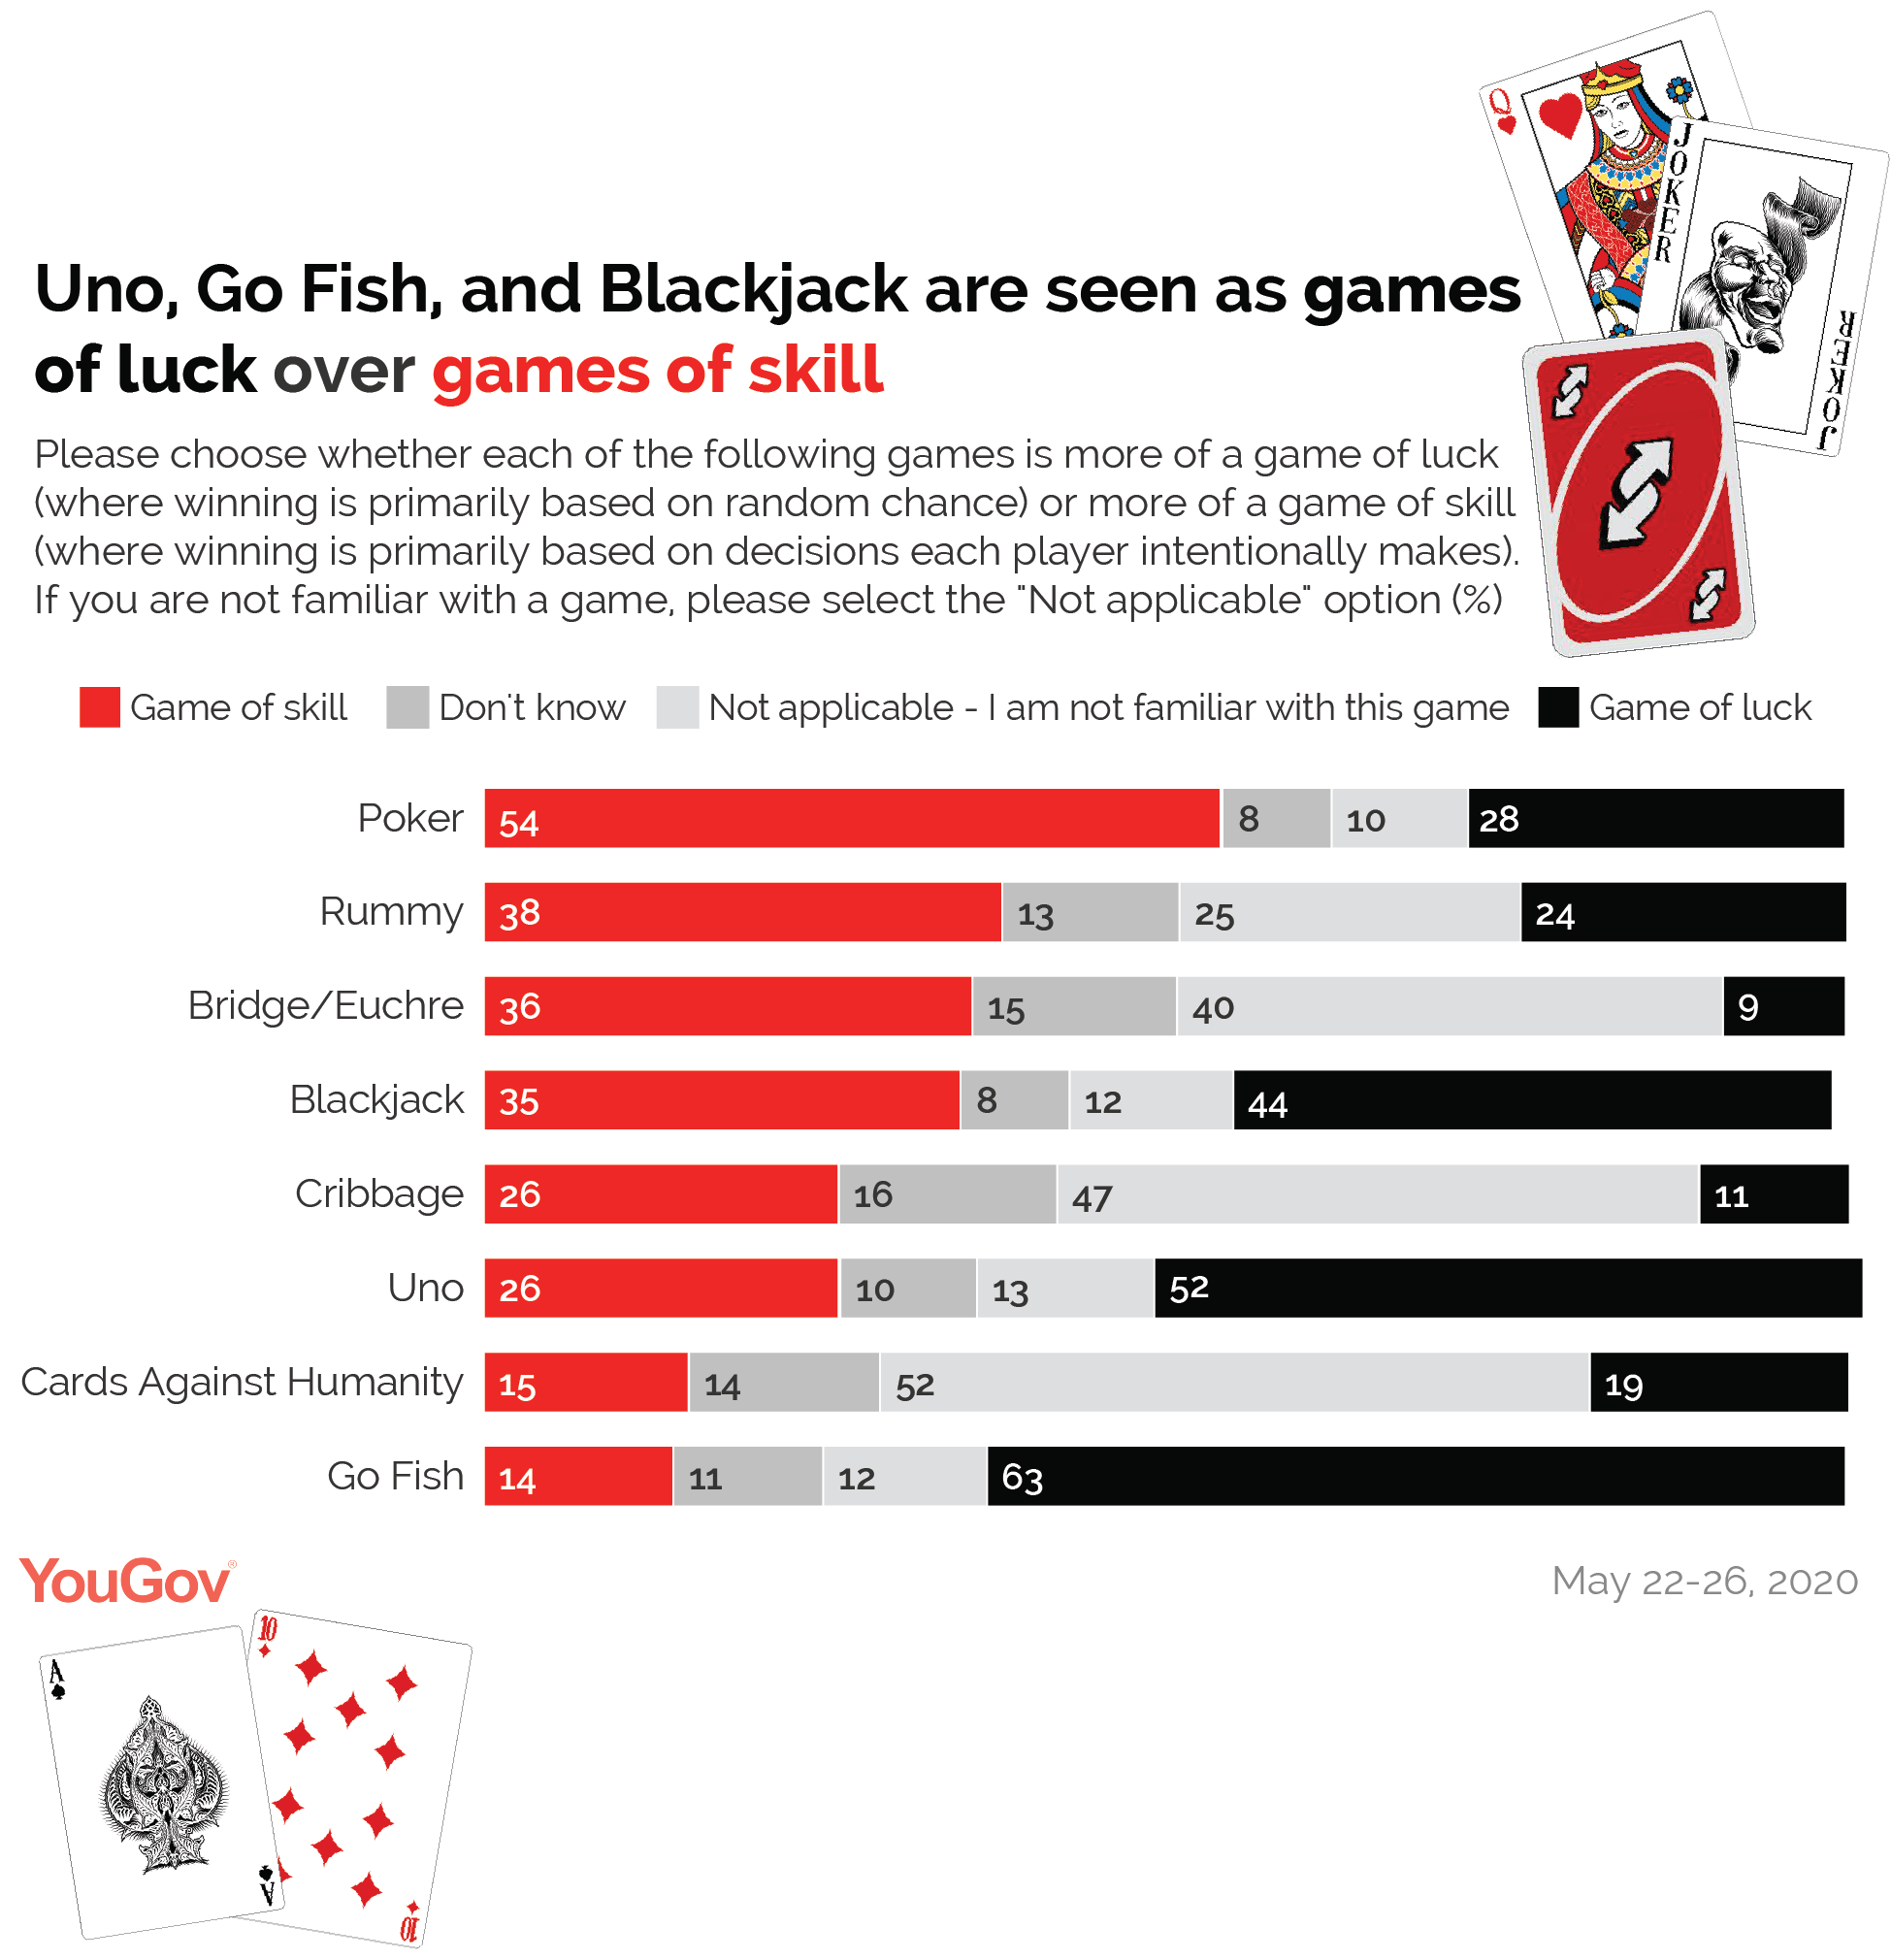 Uno, Go Fish, and Blackjack are seen as games of skill